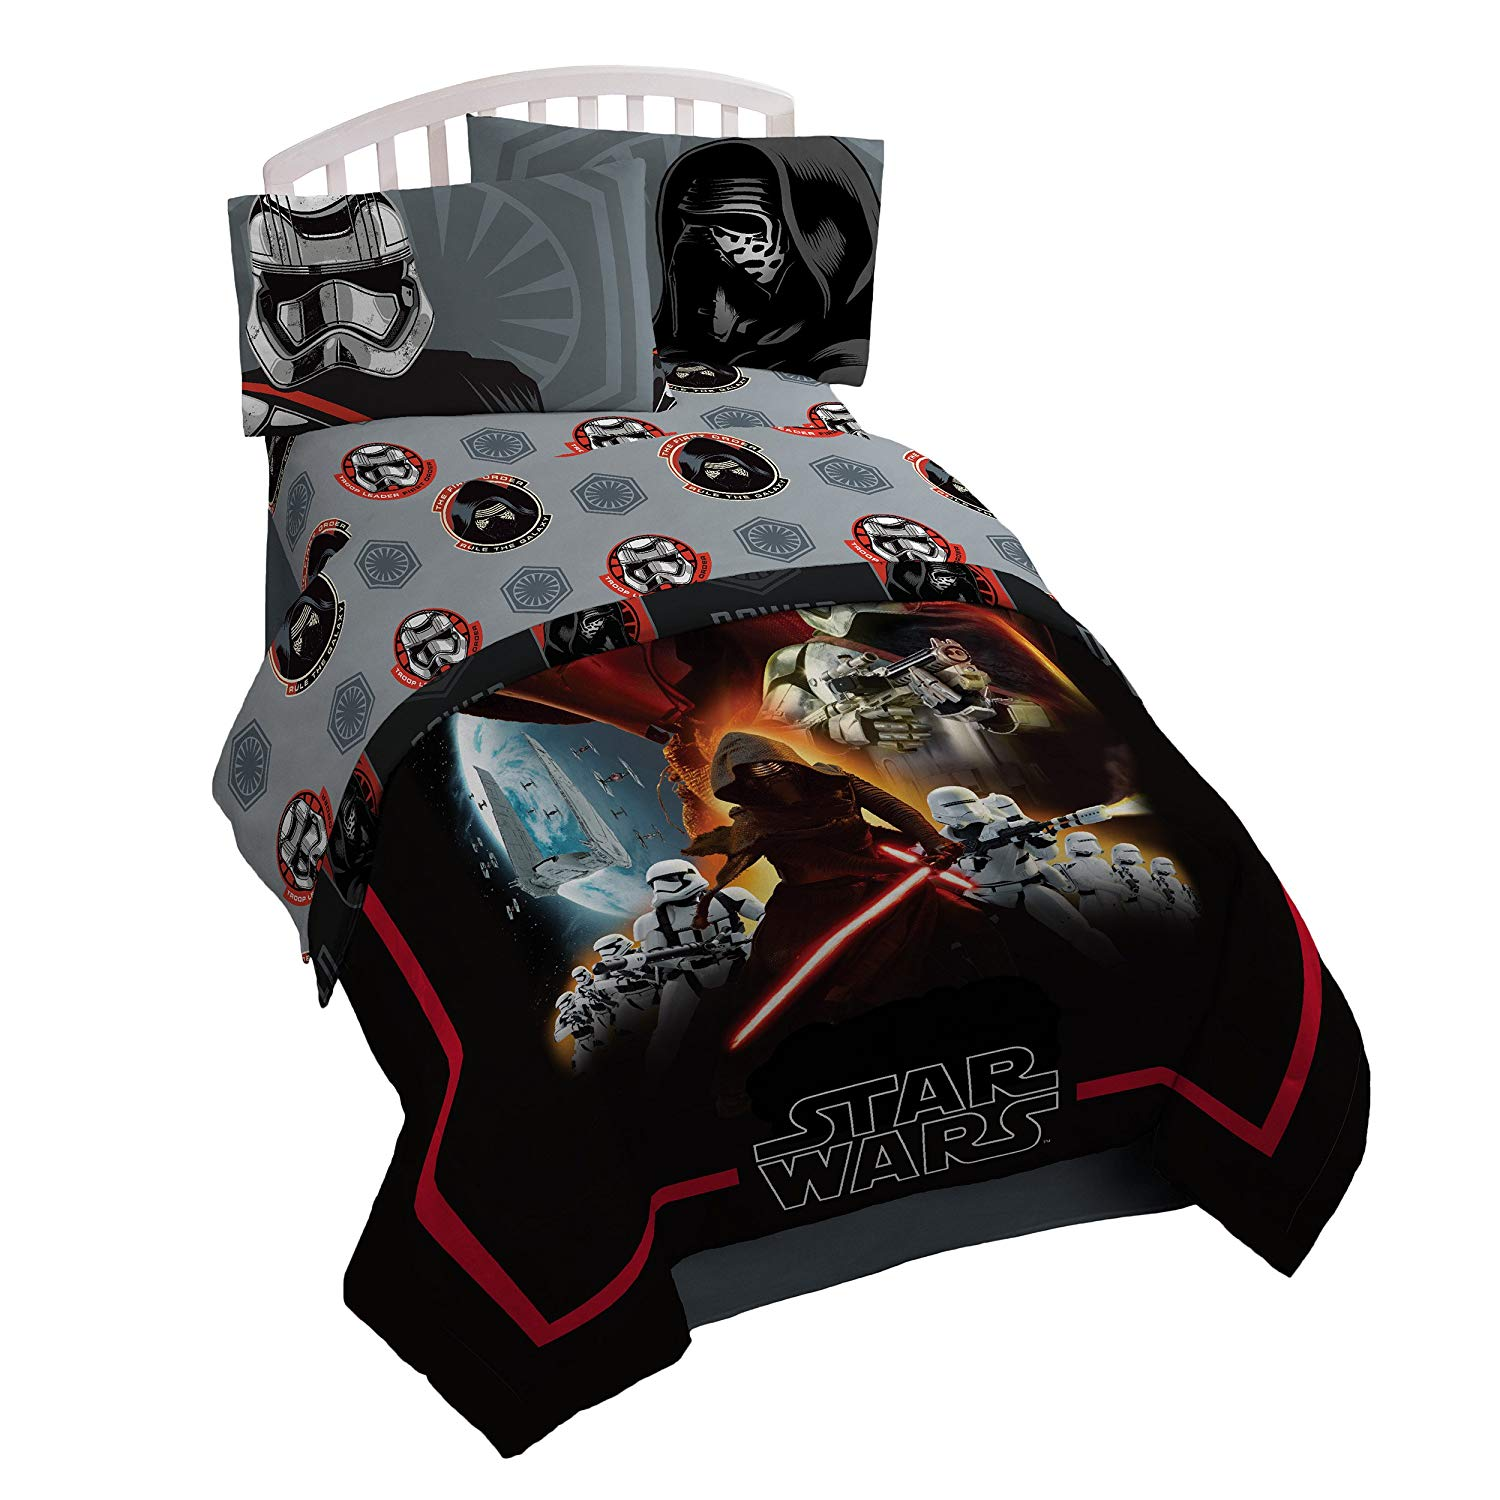 Star Wars Ep7 Photoreal Reversible Comforter, Single